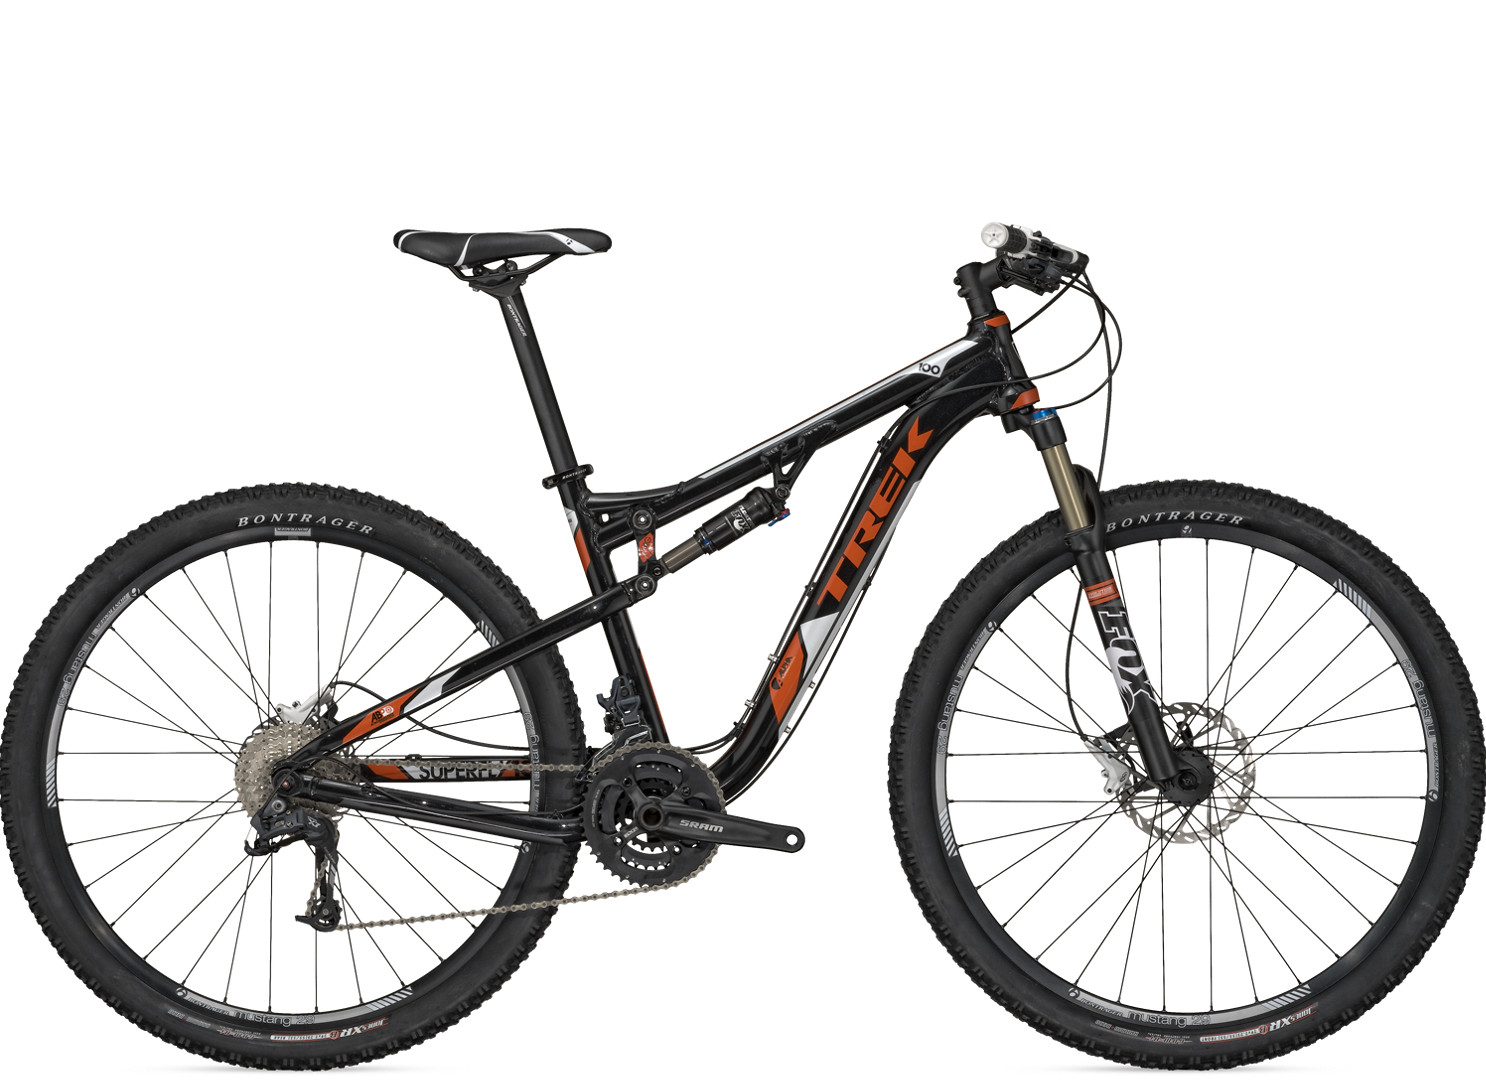 2012 Trek Superfly 100 AL Bike 21490